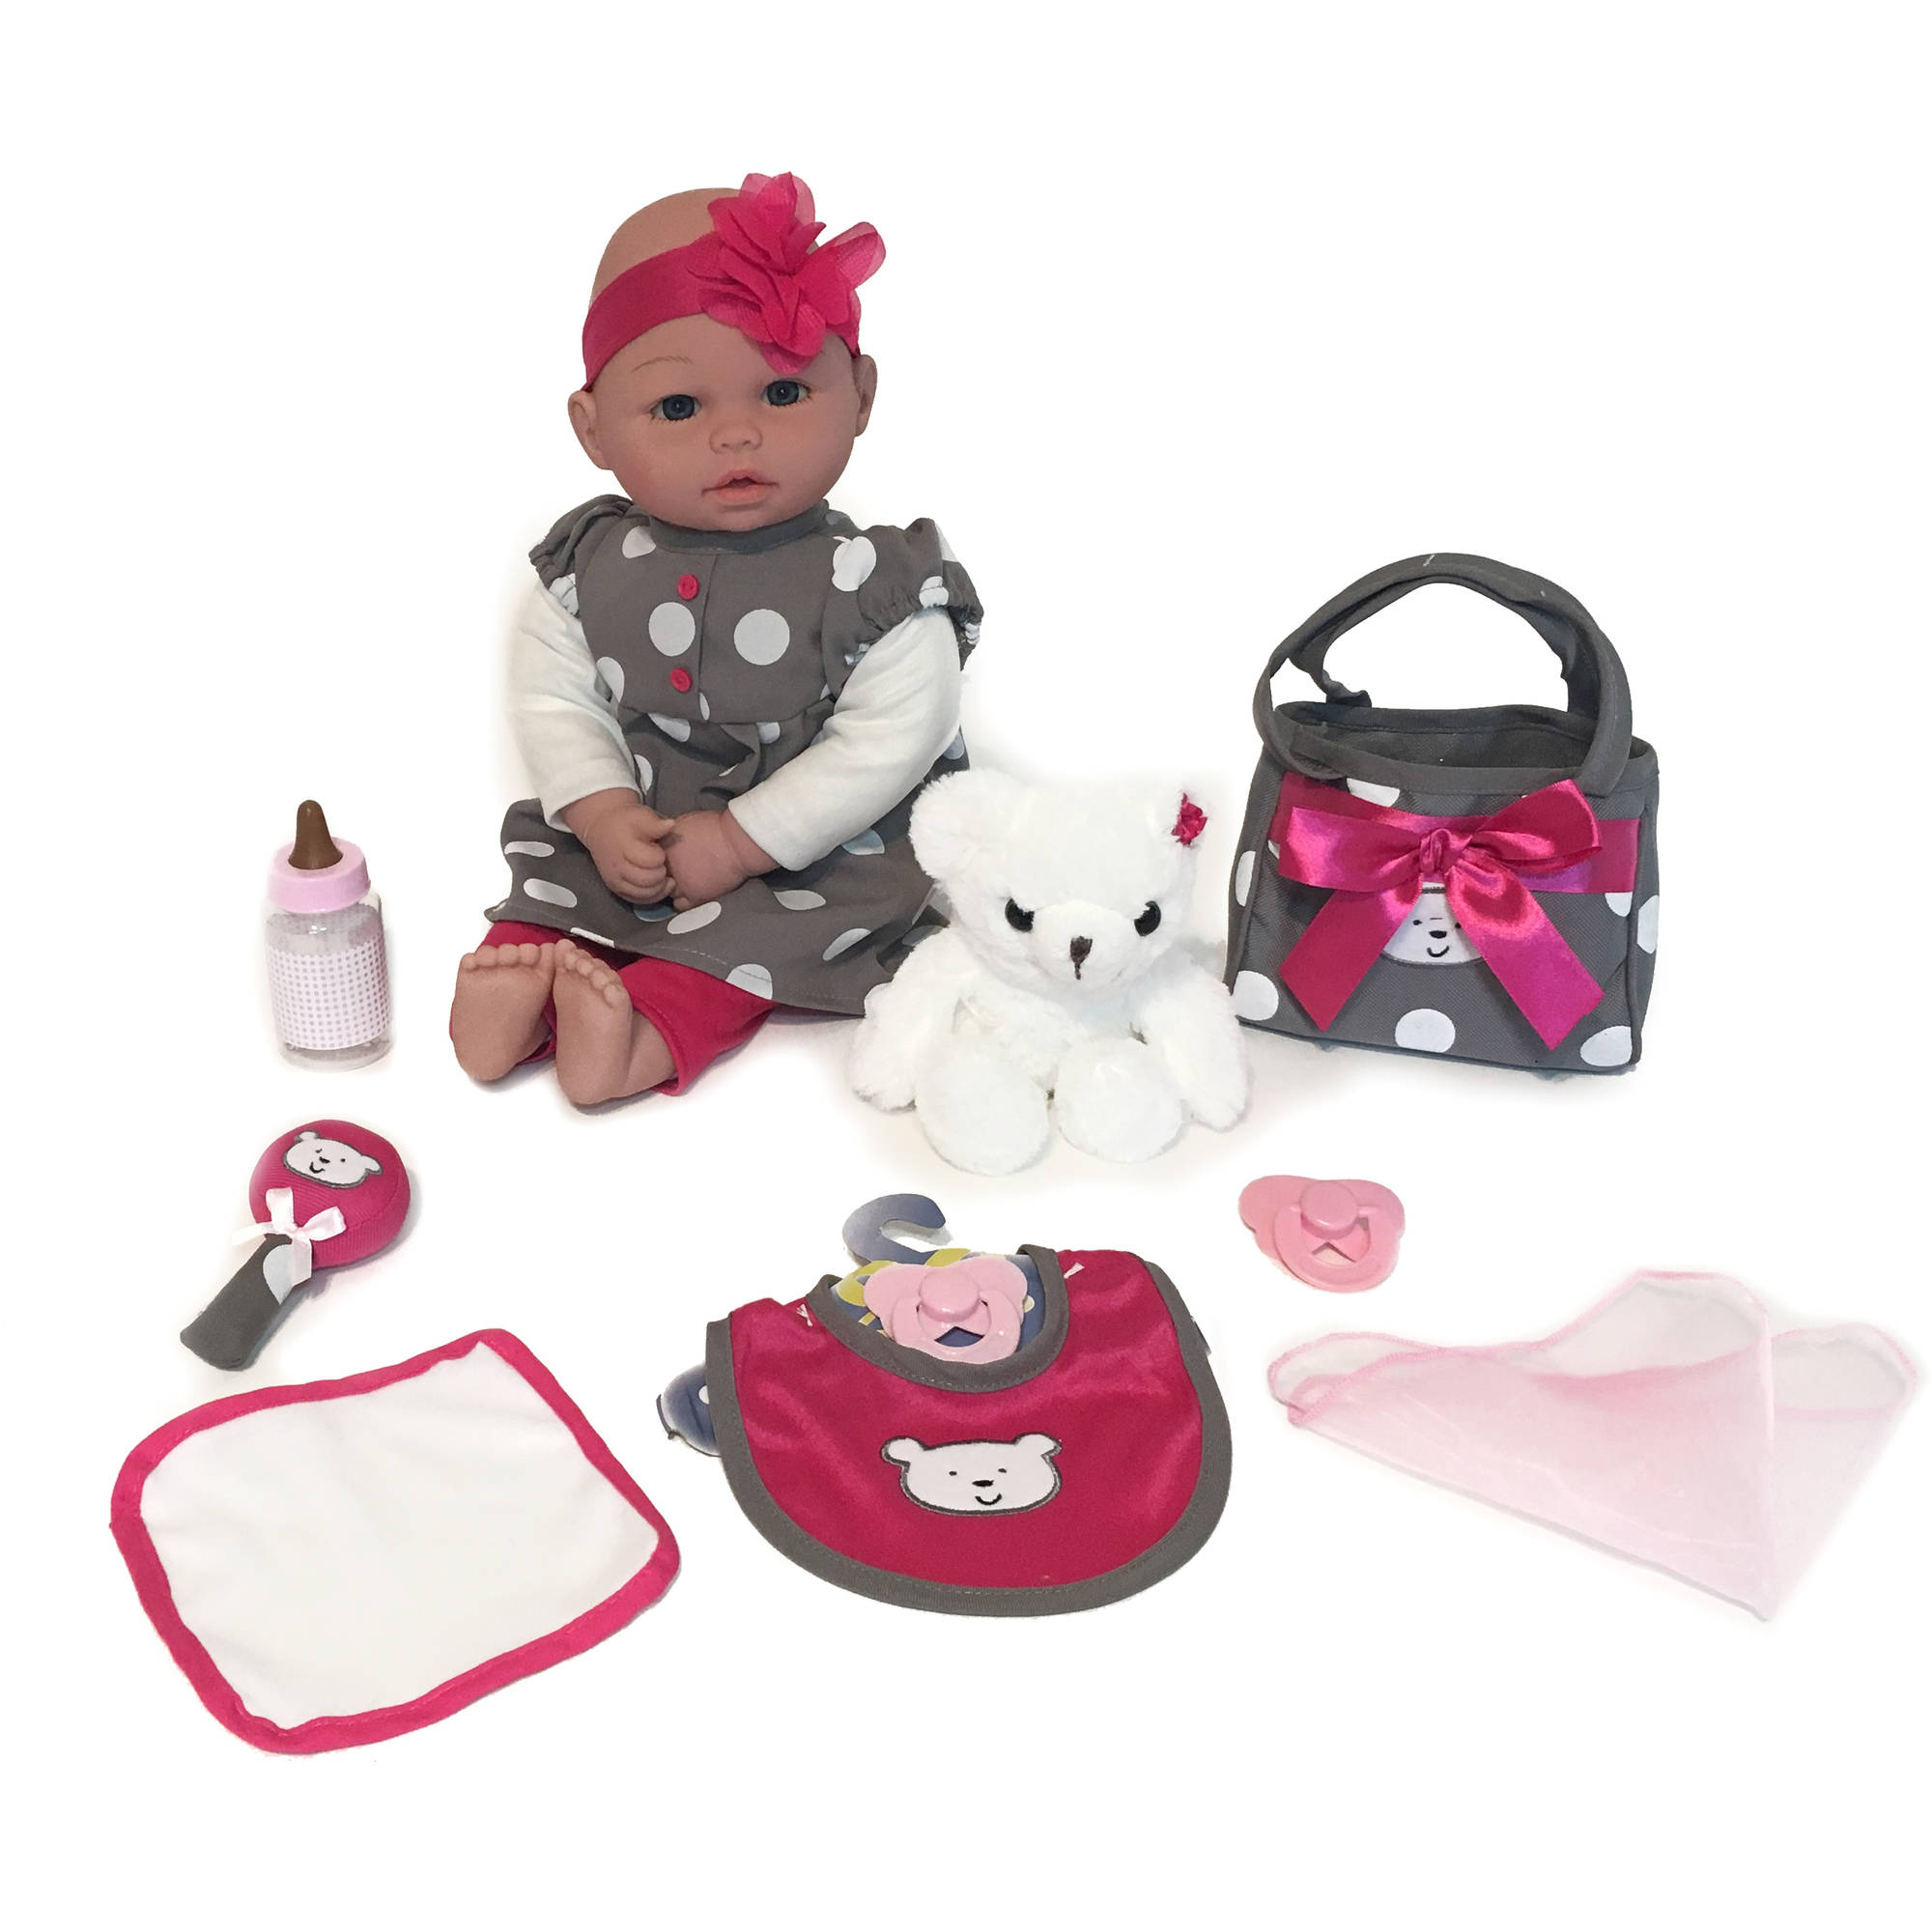 "My Sweet Love 18"" Baby Doll Gift Set with Bear"